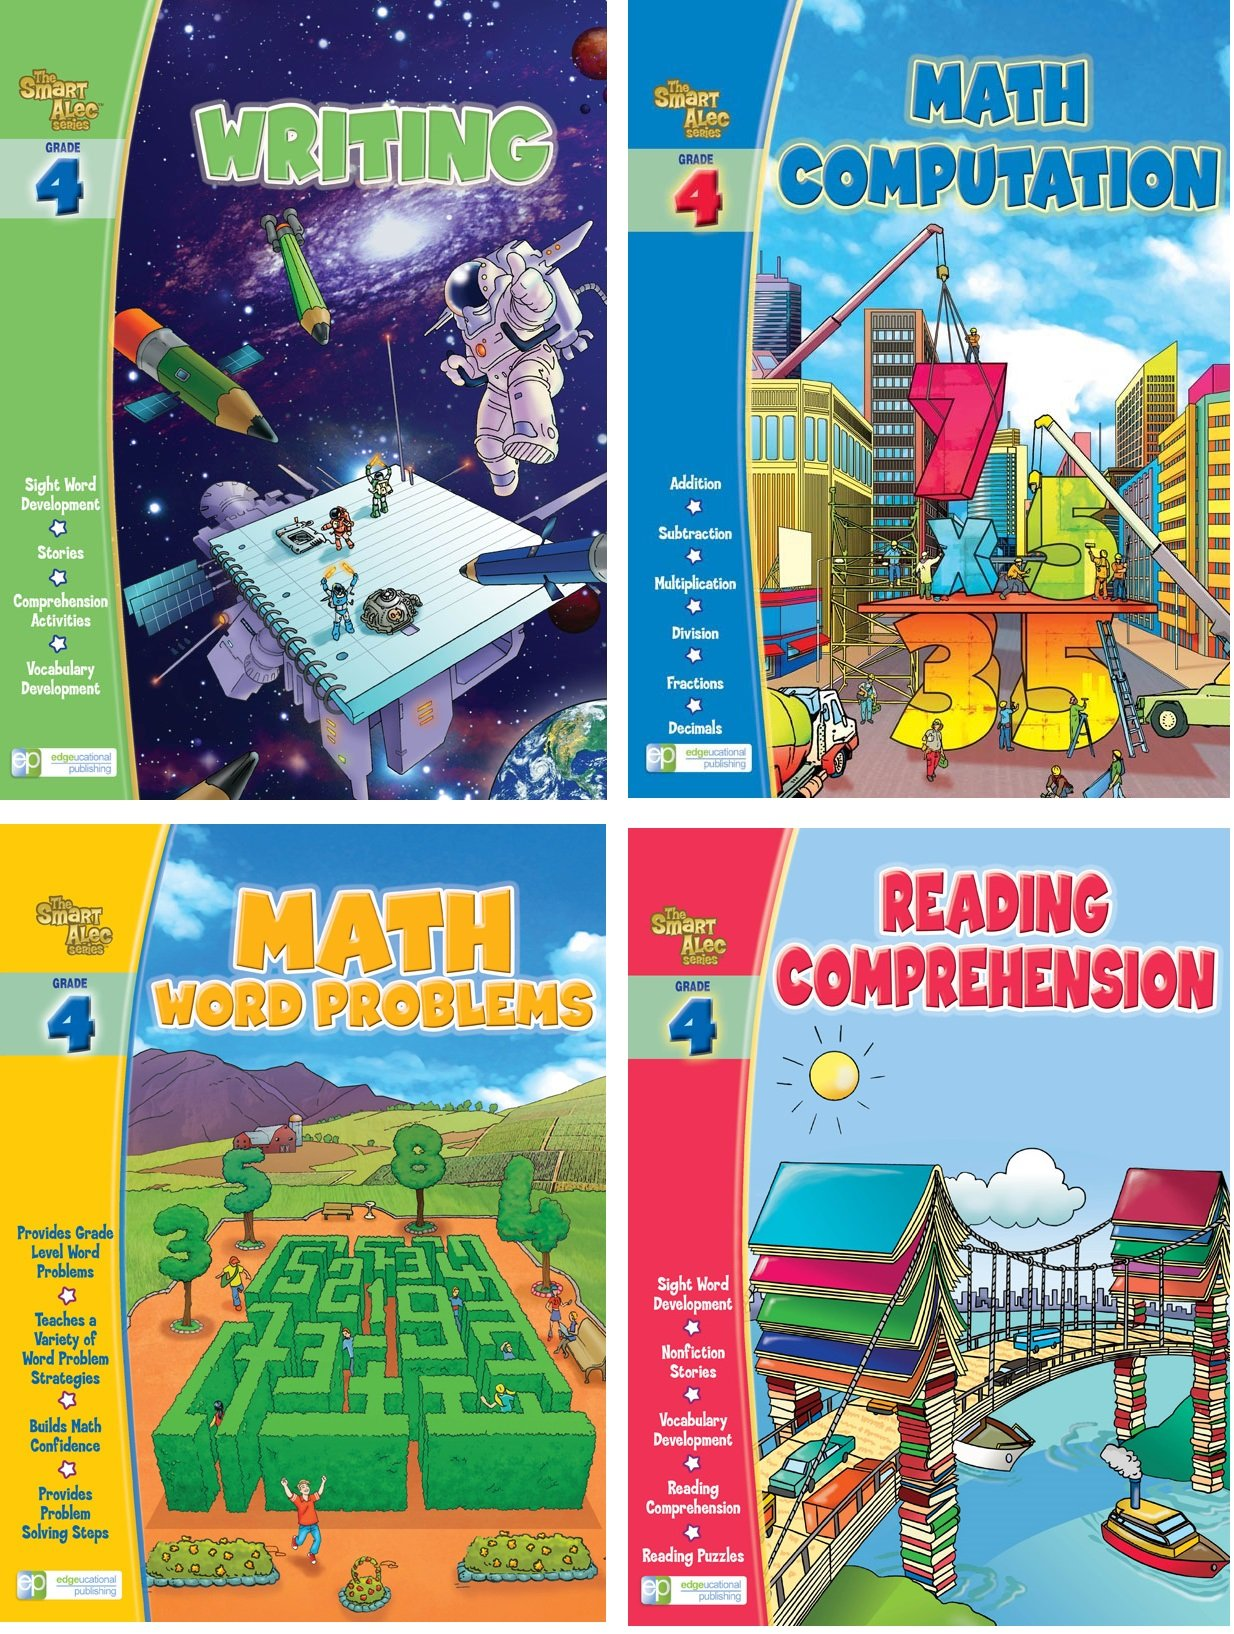 Smart Alec (4th Grade) Four Pack Learning Series, Includes: Writing, Math Readiness, Reading Readiness, Math Word Problems by Edgeucational Publishing Heroy (Image #1)